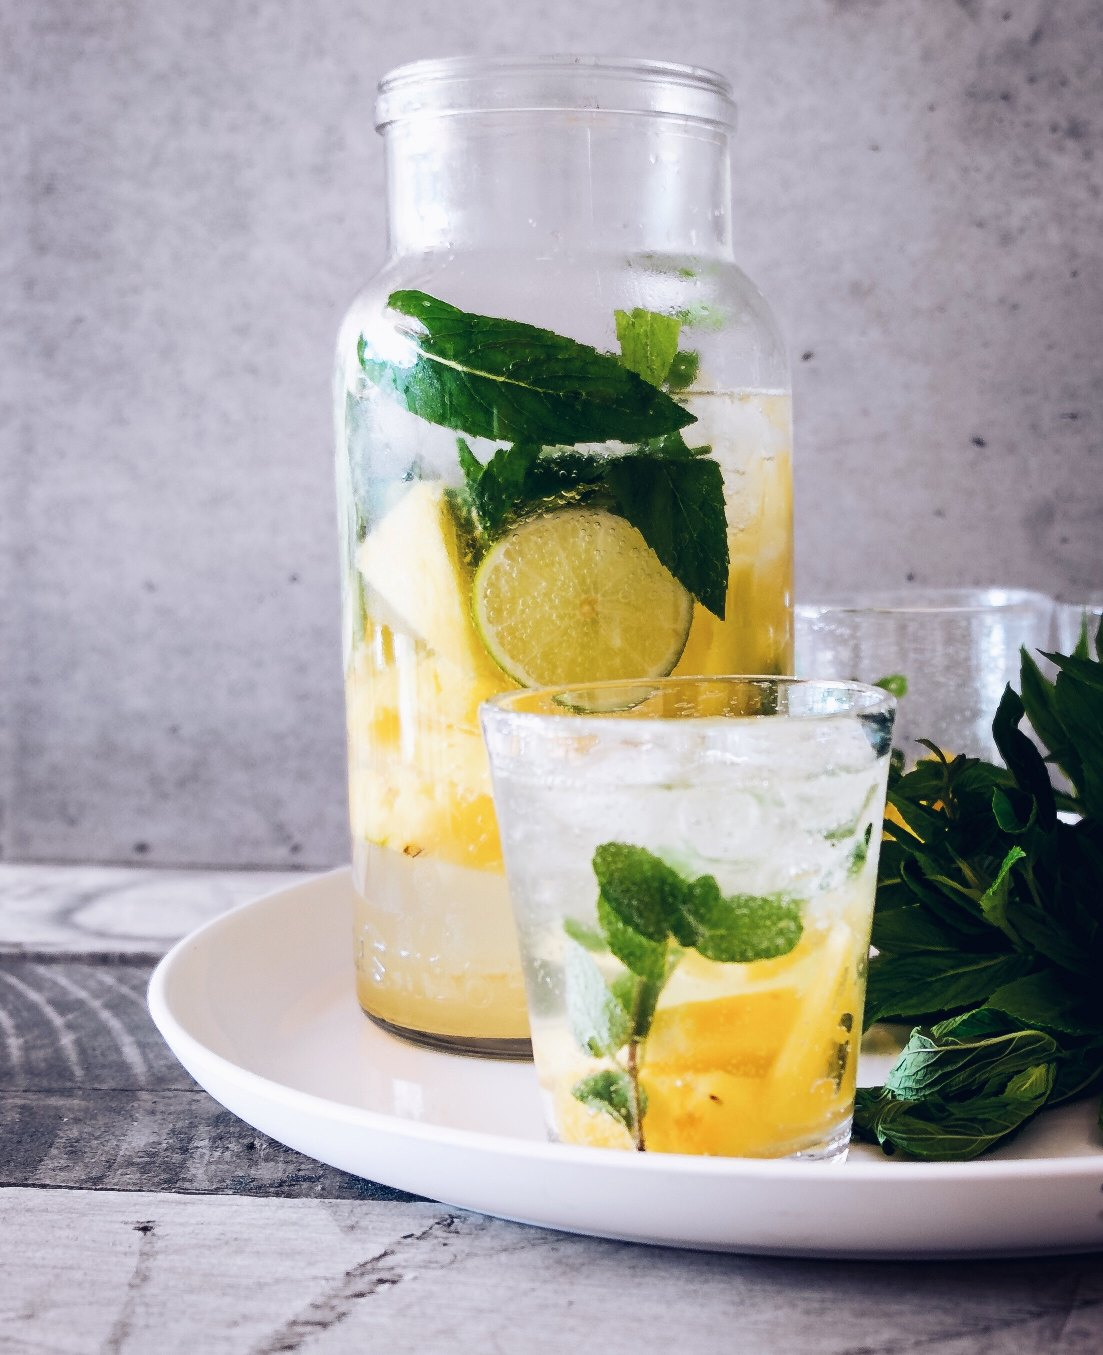 Reasons to start your day with lemon water